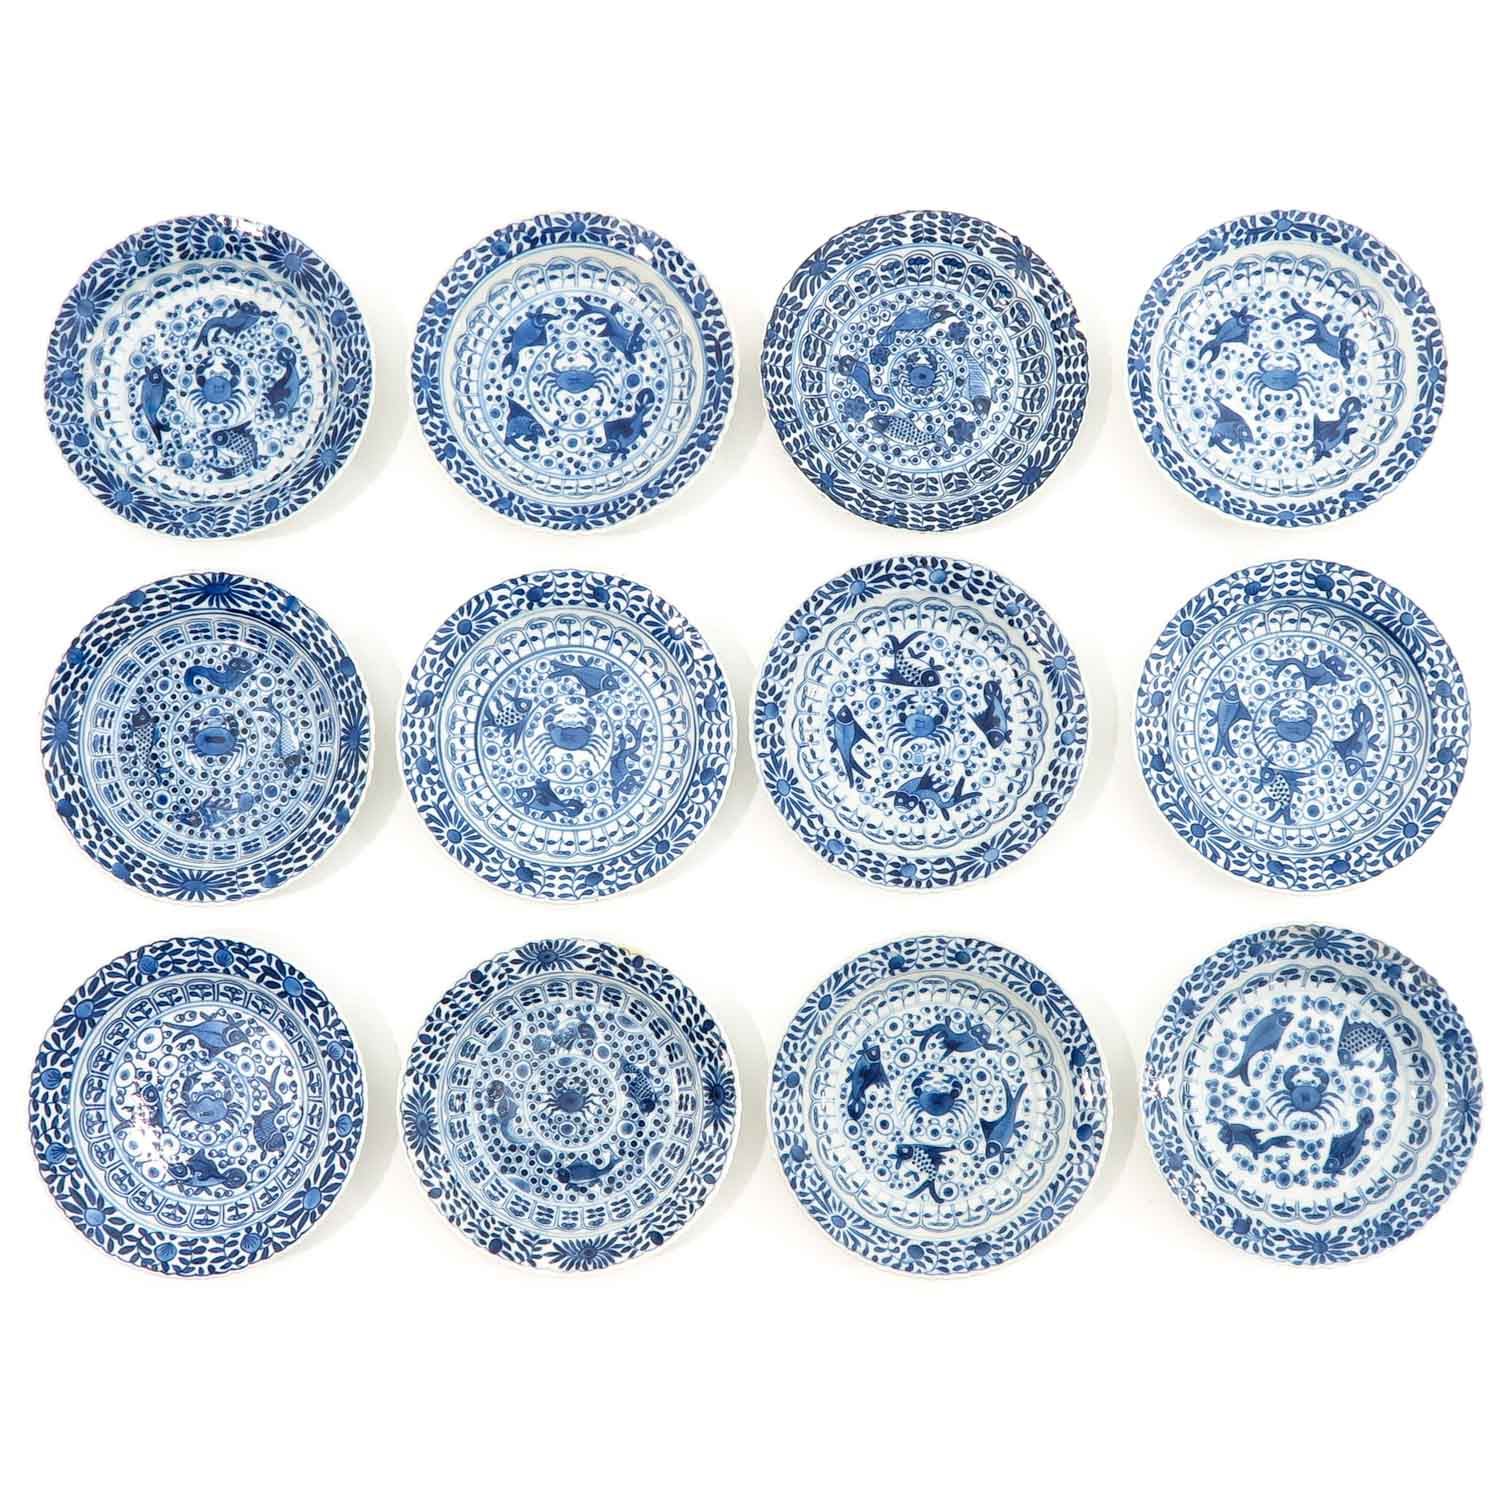 A Series of 12 Cups and Saucers - Image 7 of 10